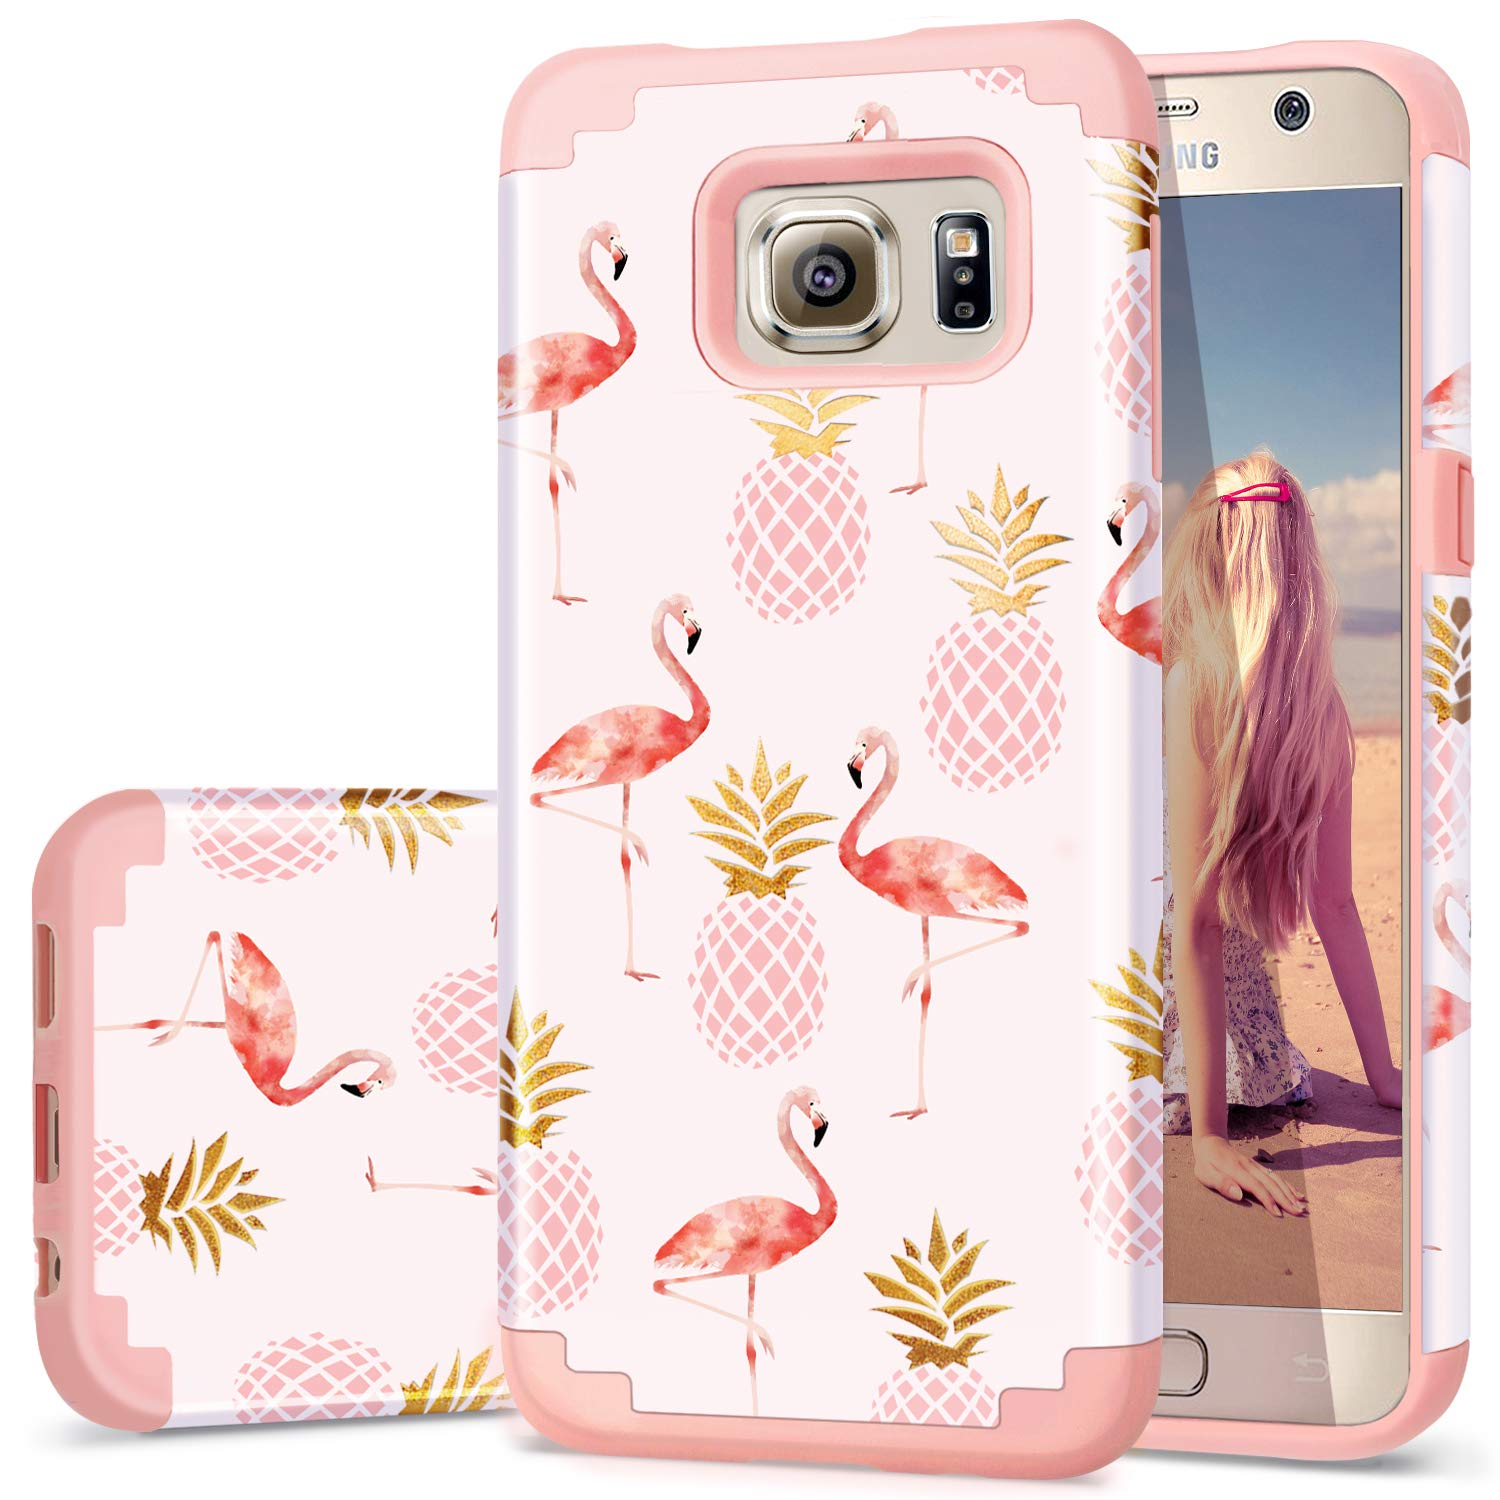 Fingic Samsung Galaxy S6 Case,S6 Case Summer,Pineapple&Flamingos Pattern Cute Case Hard PC&Soft Silicone Case for Girls Cover for Samsung Galaxy ...